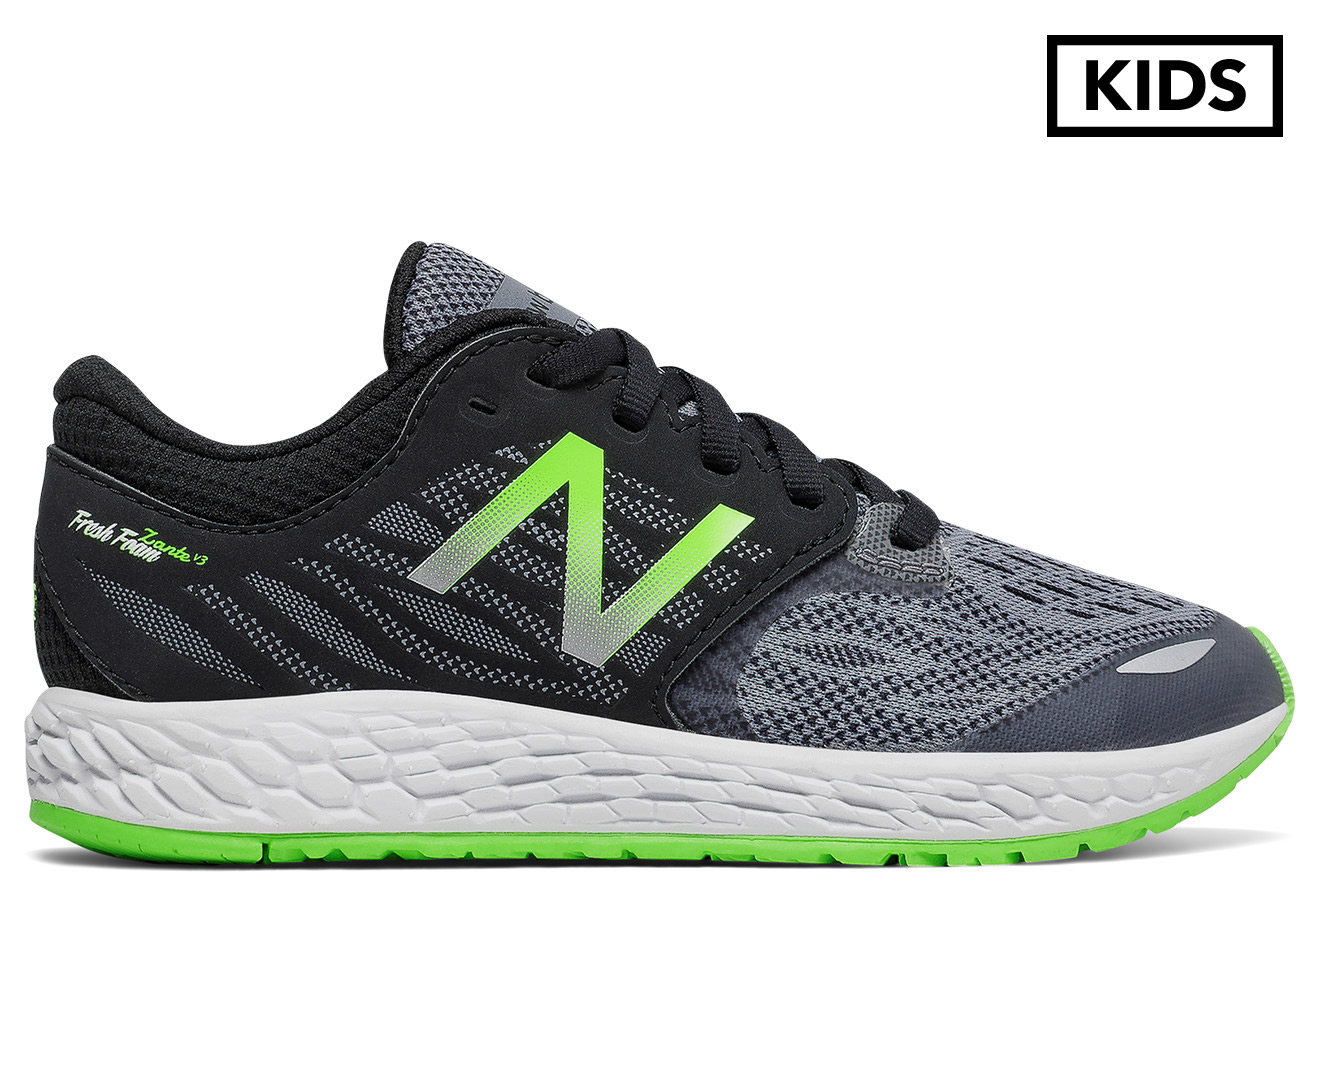 New Balance School Shoes Australia